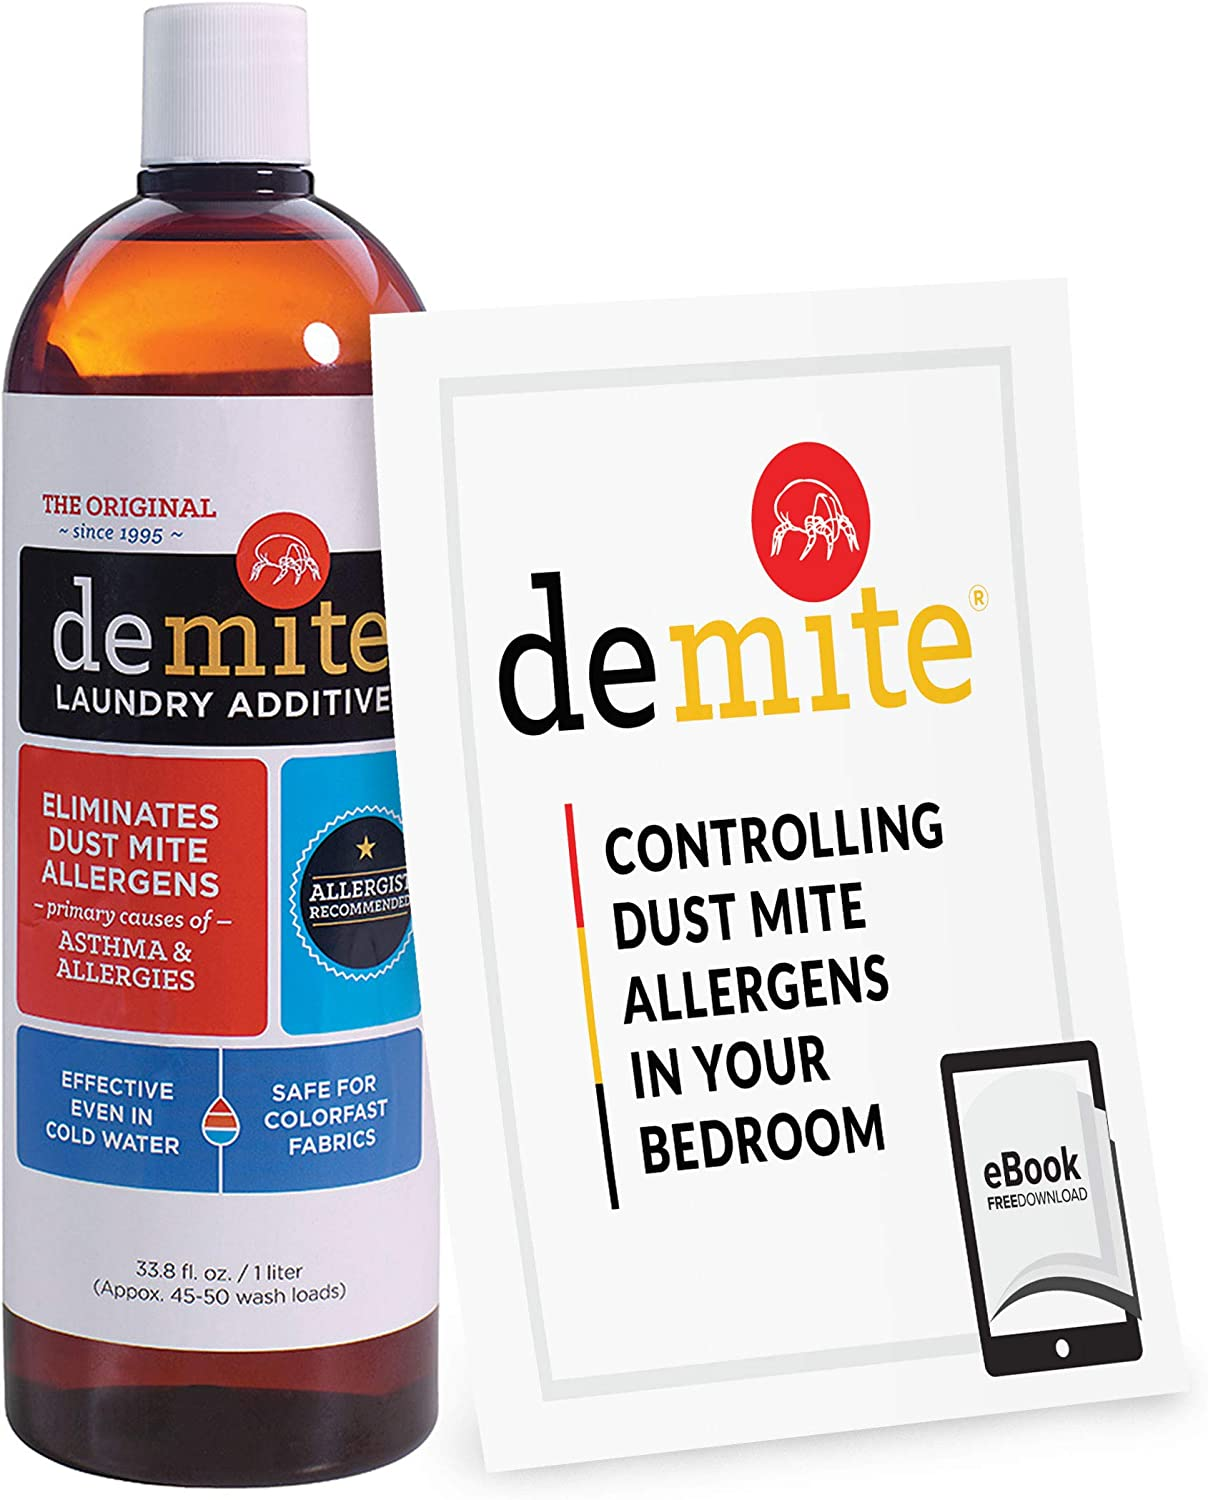 DeMite Laundry Additive (1 Liter) Allergen Eliminator with Exclusive Bonus eBook - Expert Pro Tips to Eliminate Dust Mite Allergens